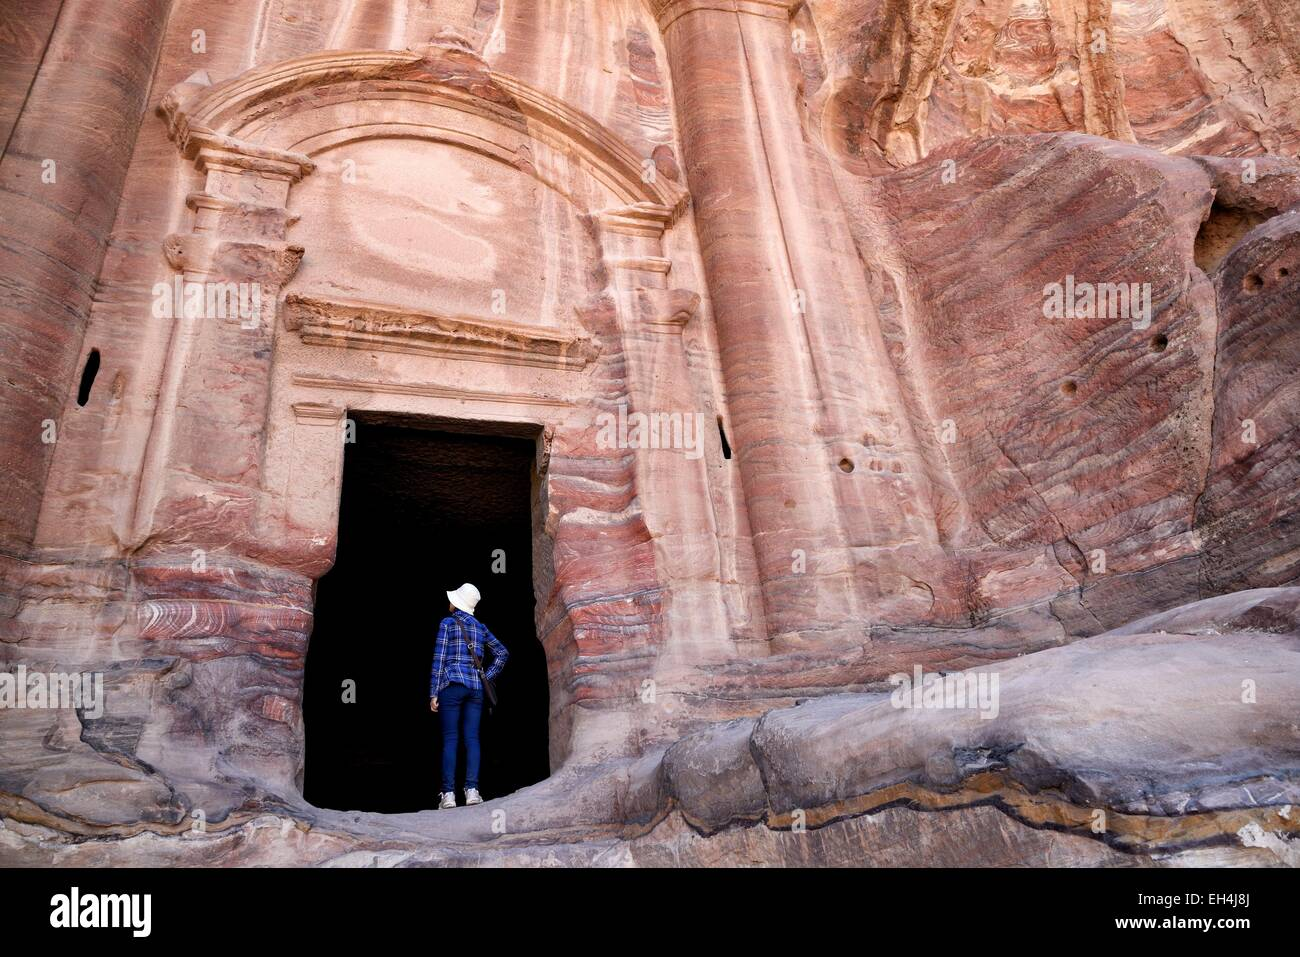 Jordan, Nabataean archeological site of Petra, listed as World Heritage by UNESCO, woman at the entrance of the - Stock Image